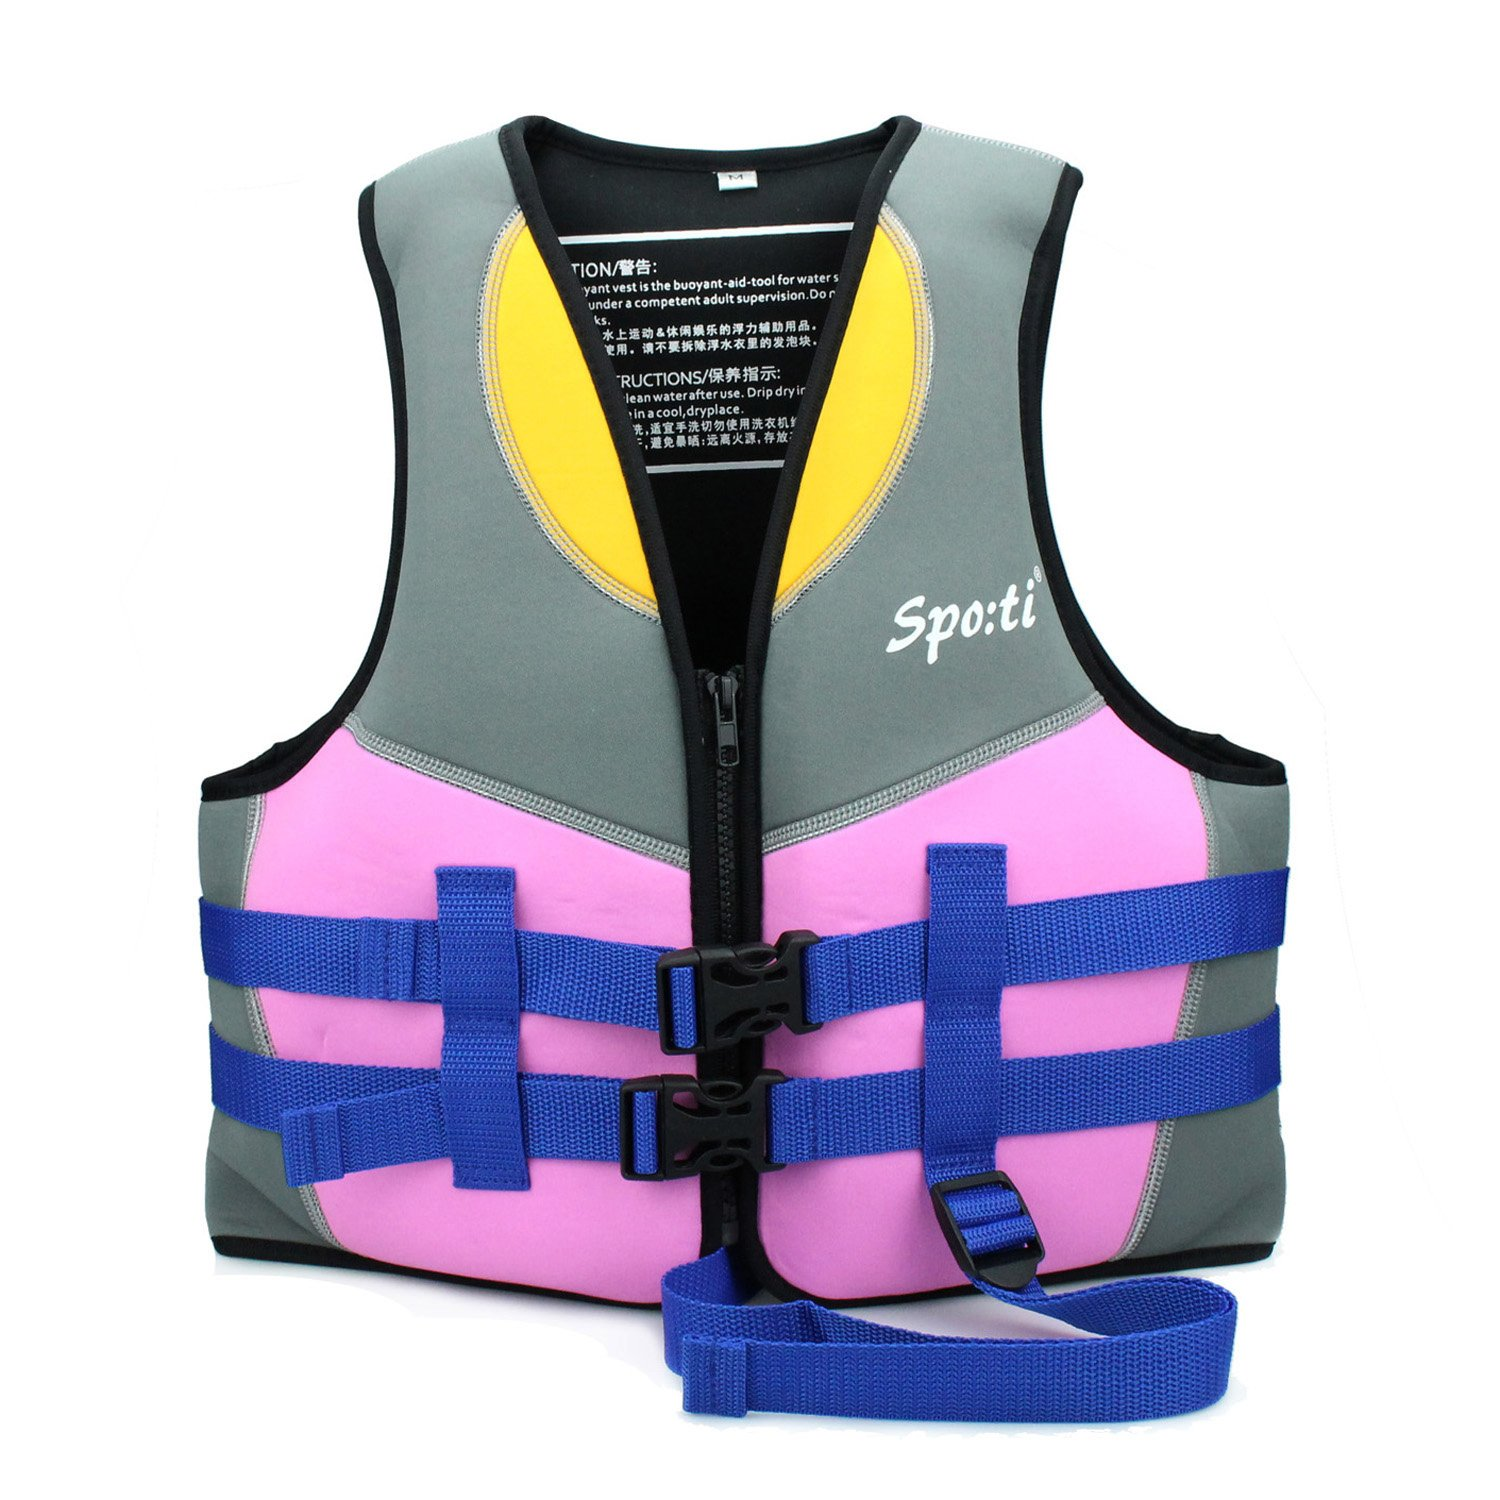 Genwiss Life Jackets for Girls Neoprene Child Life Vest Purple Small for 3-4 Years 33-40 lbs by Genwiss